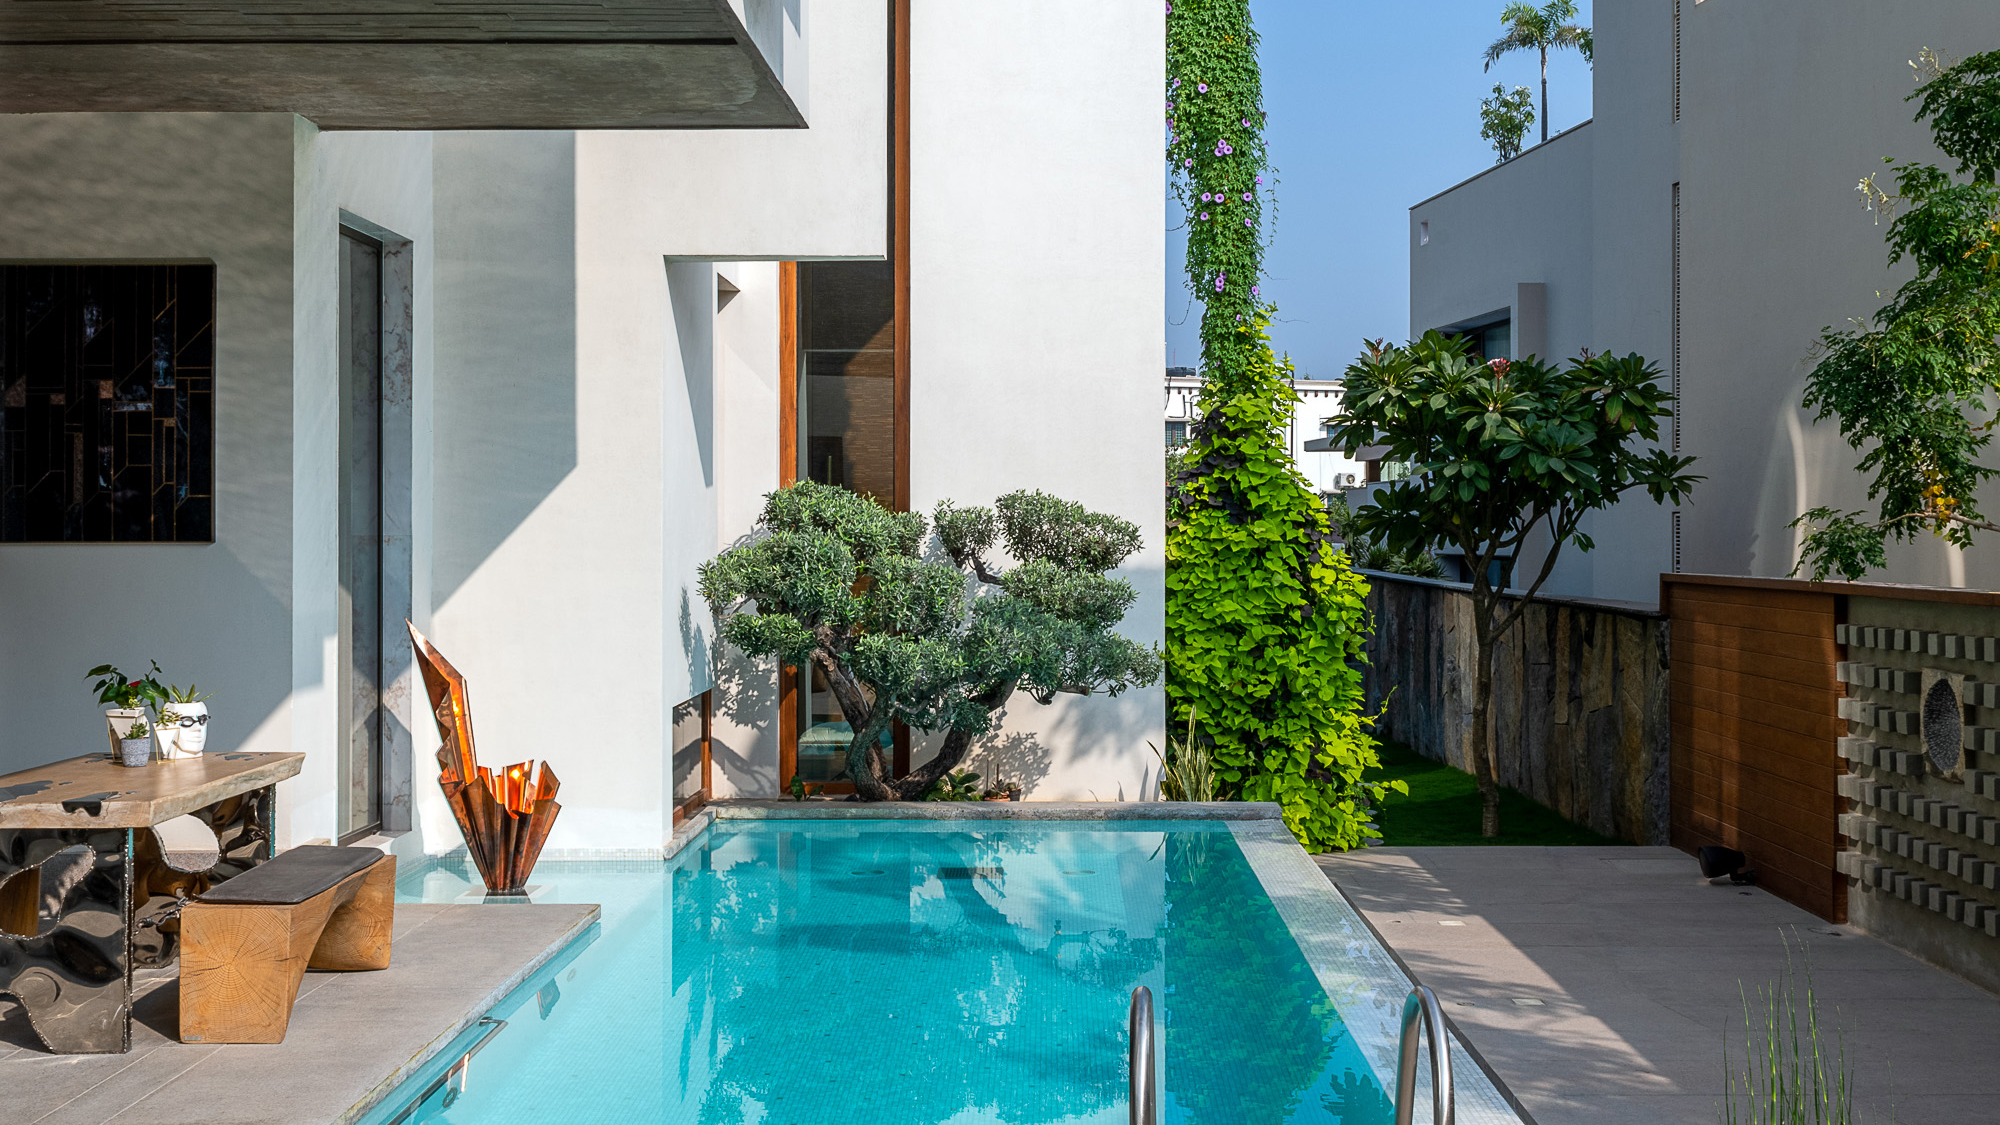 20 small backyard pool ideas to squeeze into a tiny space   Livingetc